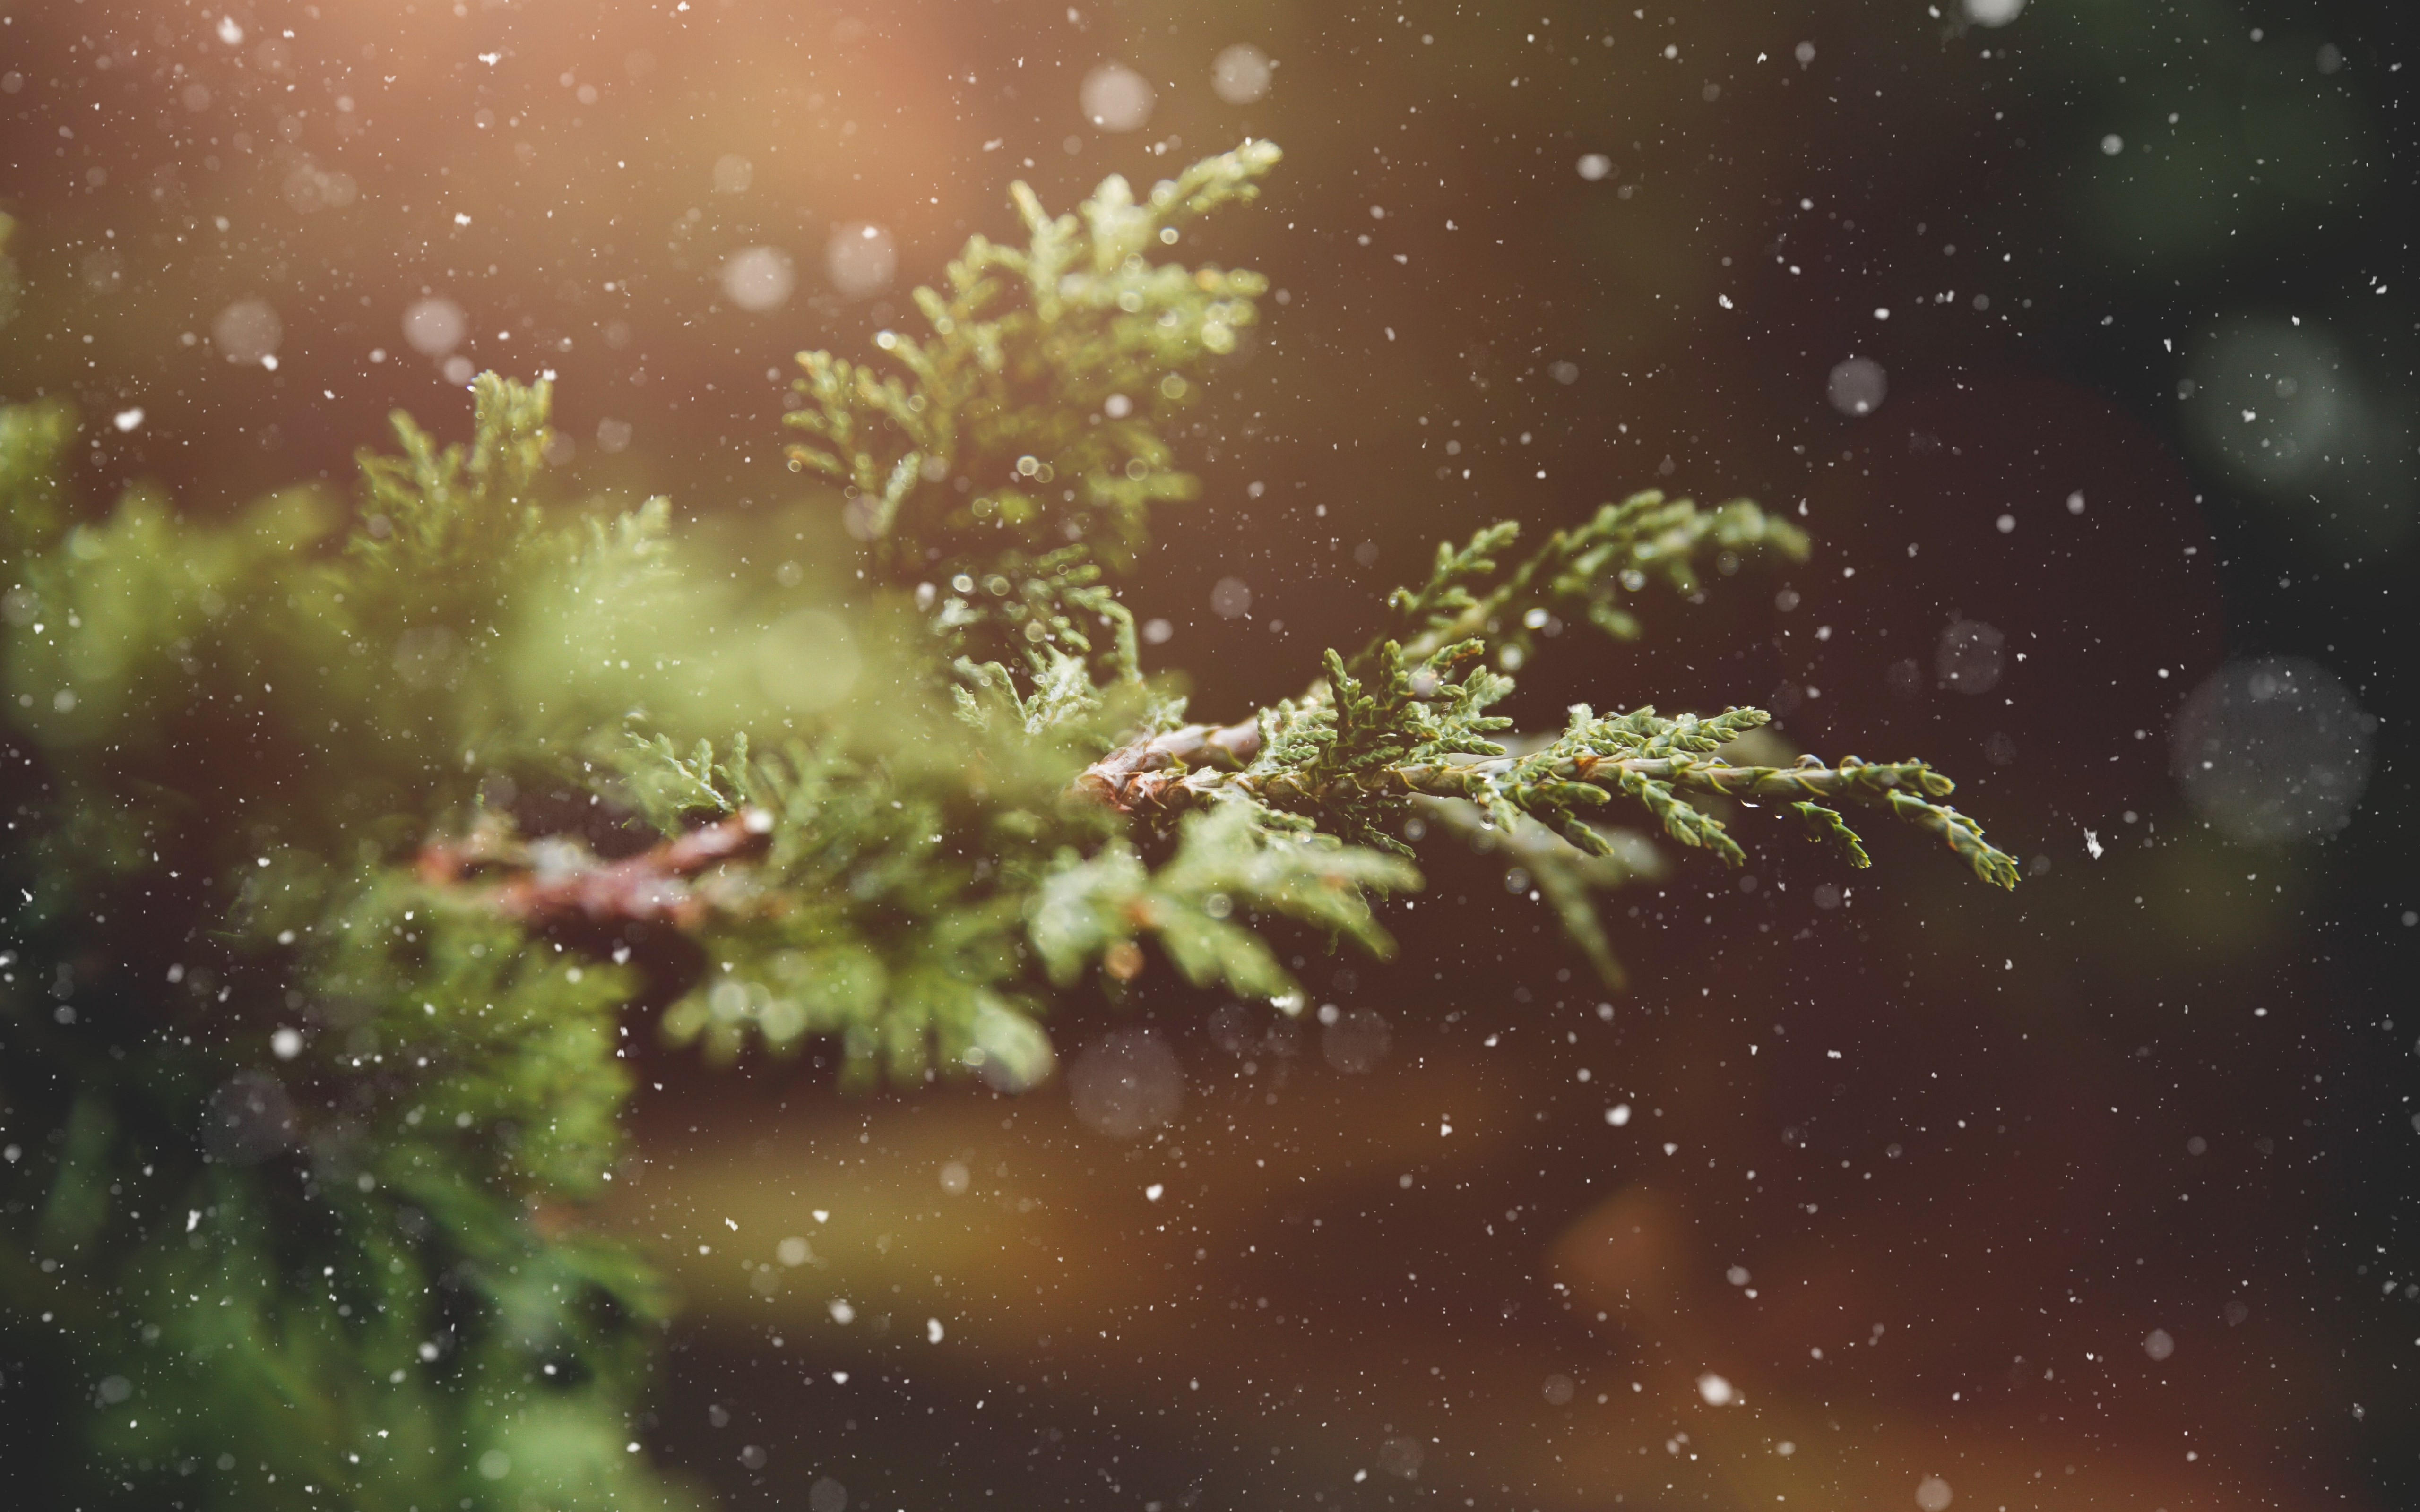 Snowflakes over the pine branch wallpaper 5120x3200